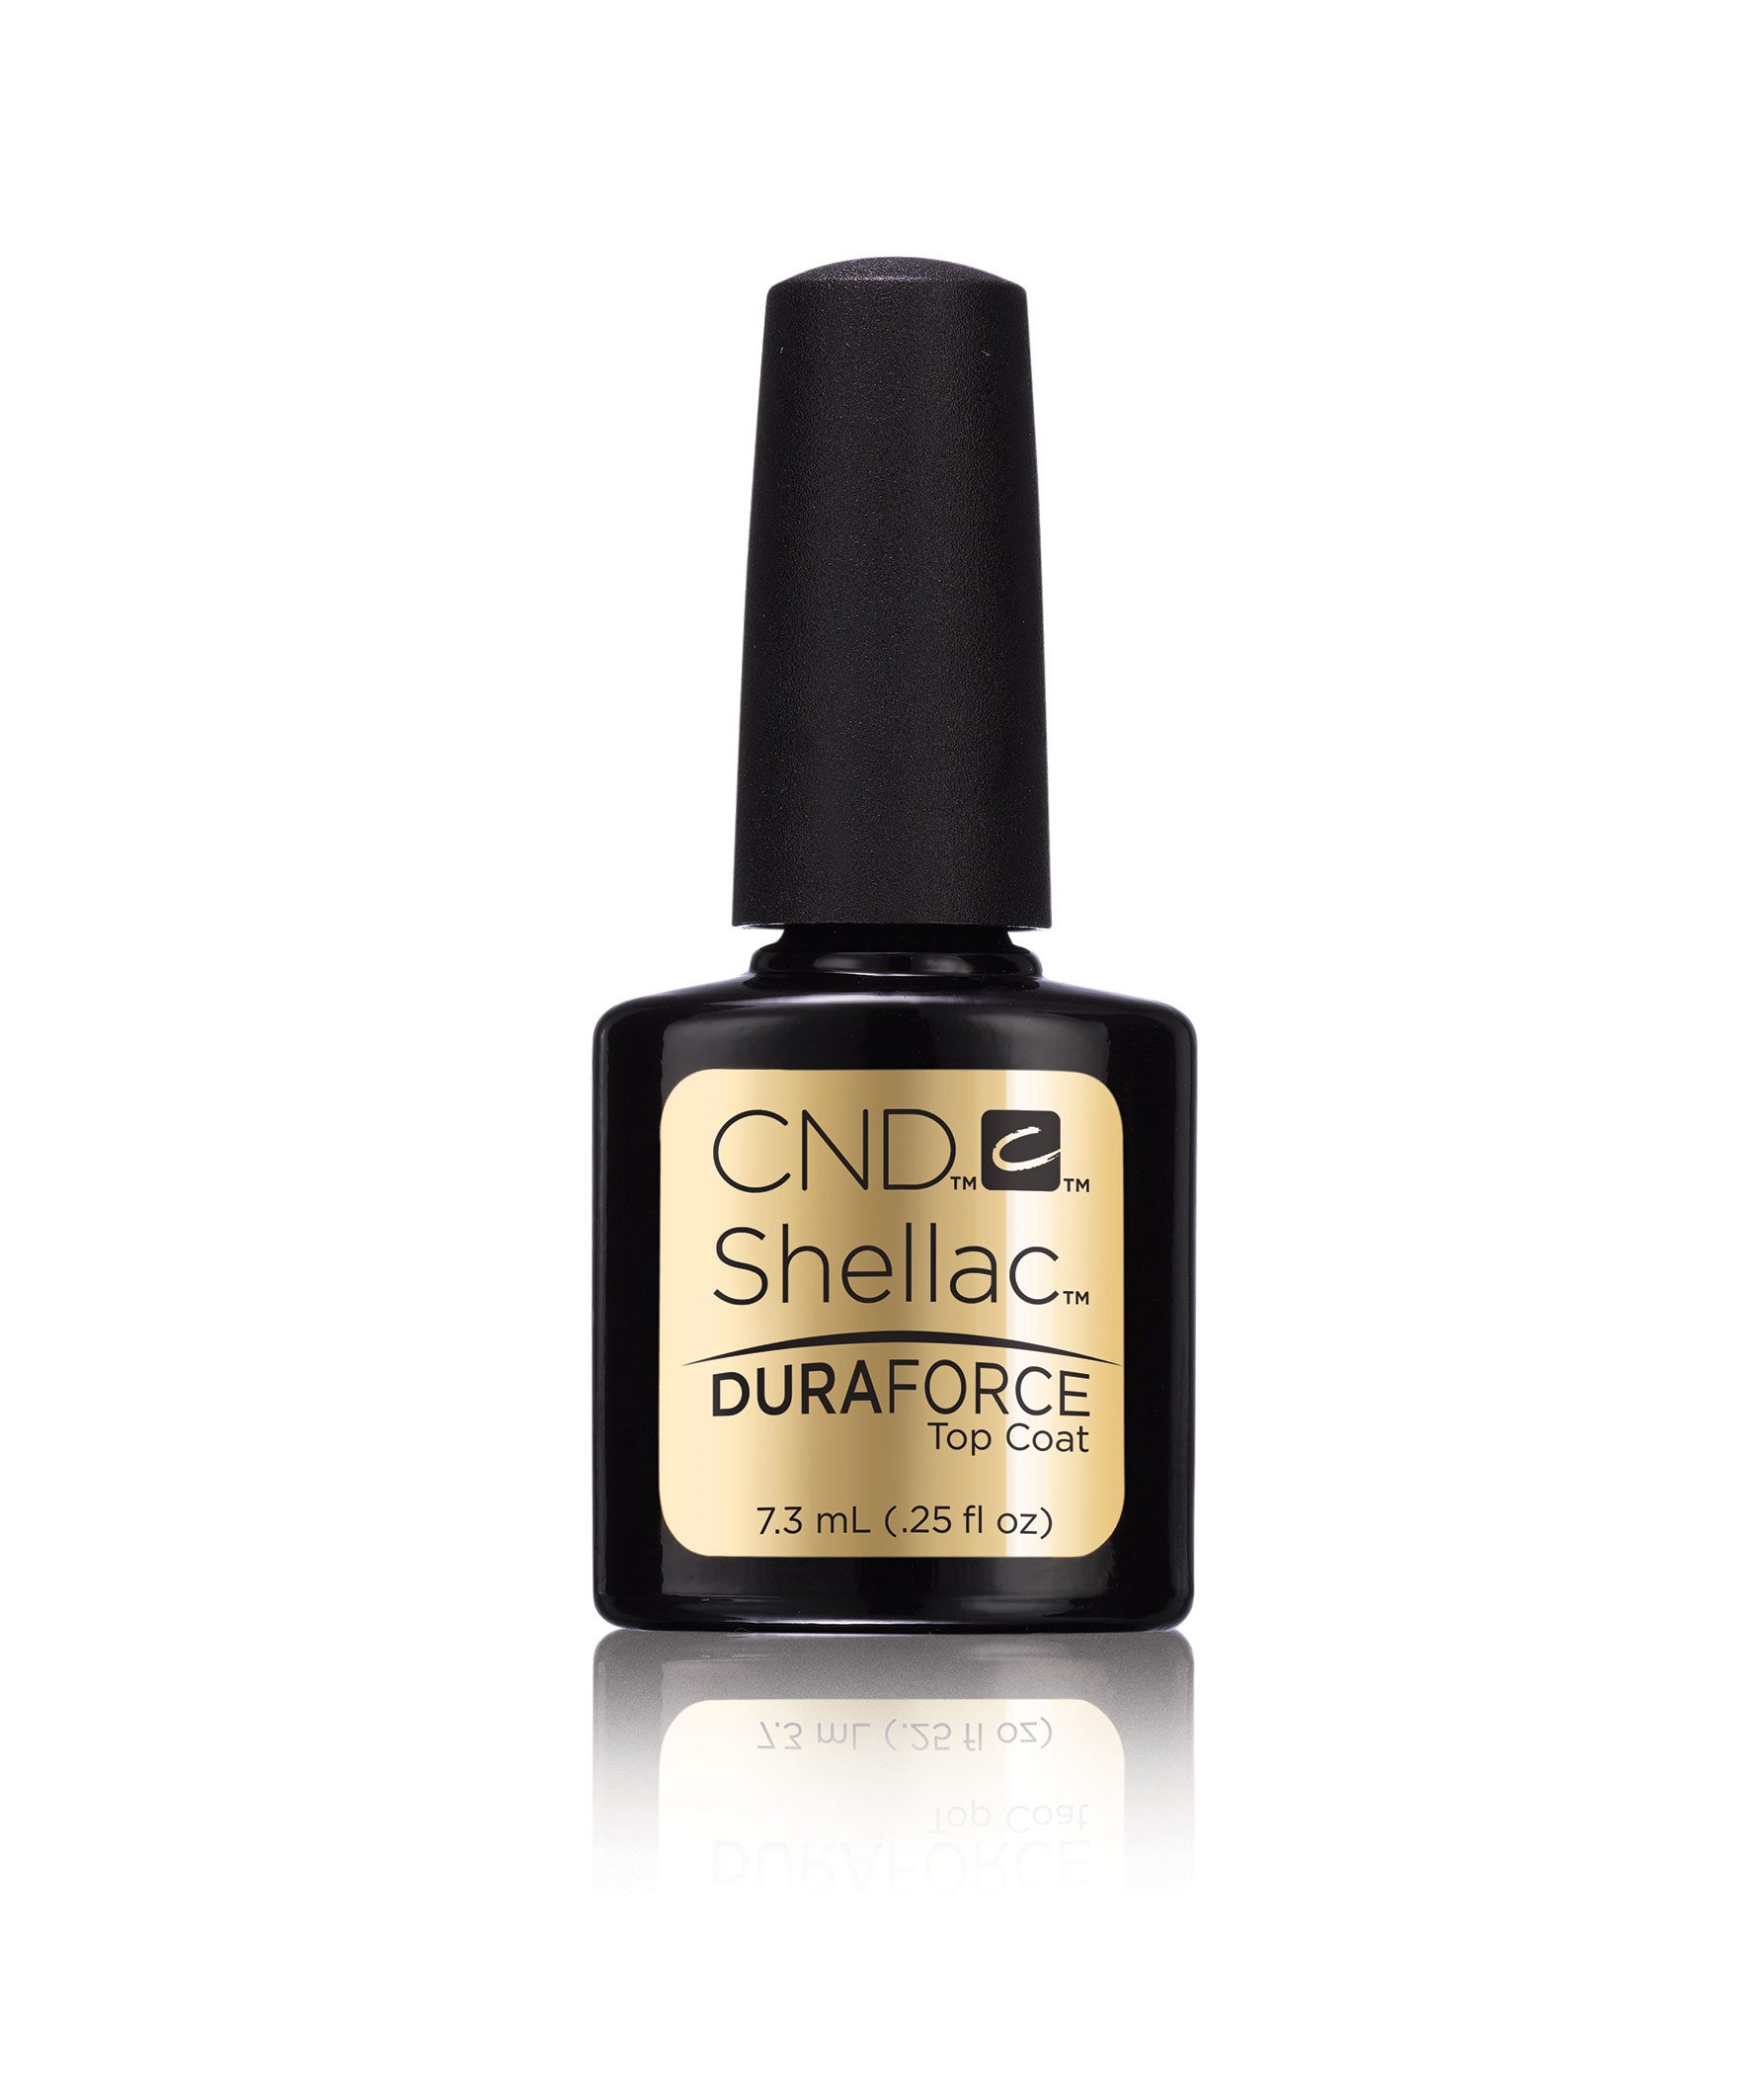 "CND Покрытие верхнее /""CND Shellac Duraforce Top Coat"" 7,3 мл"